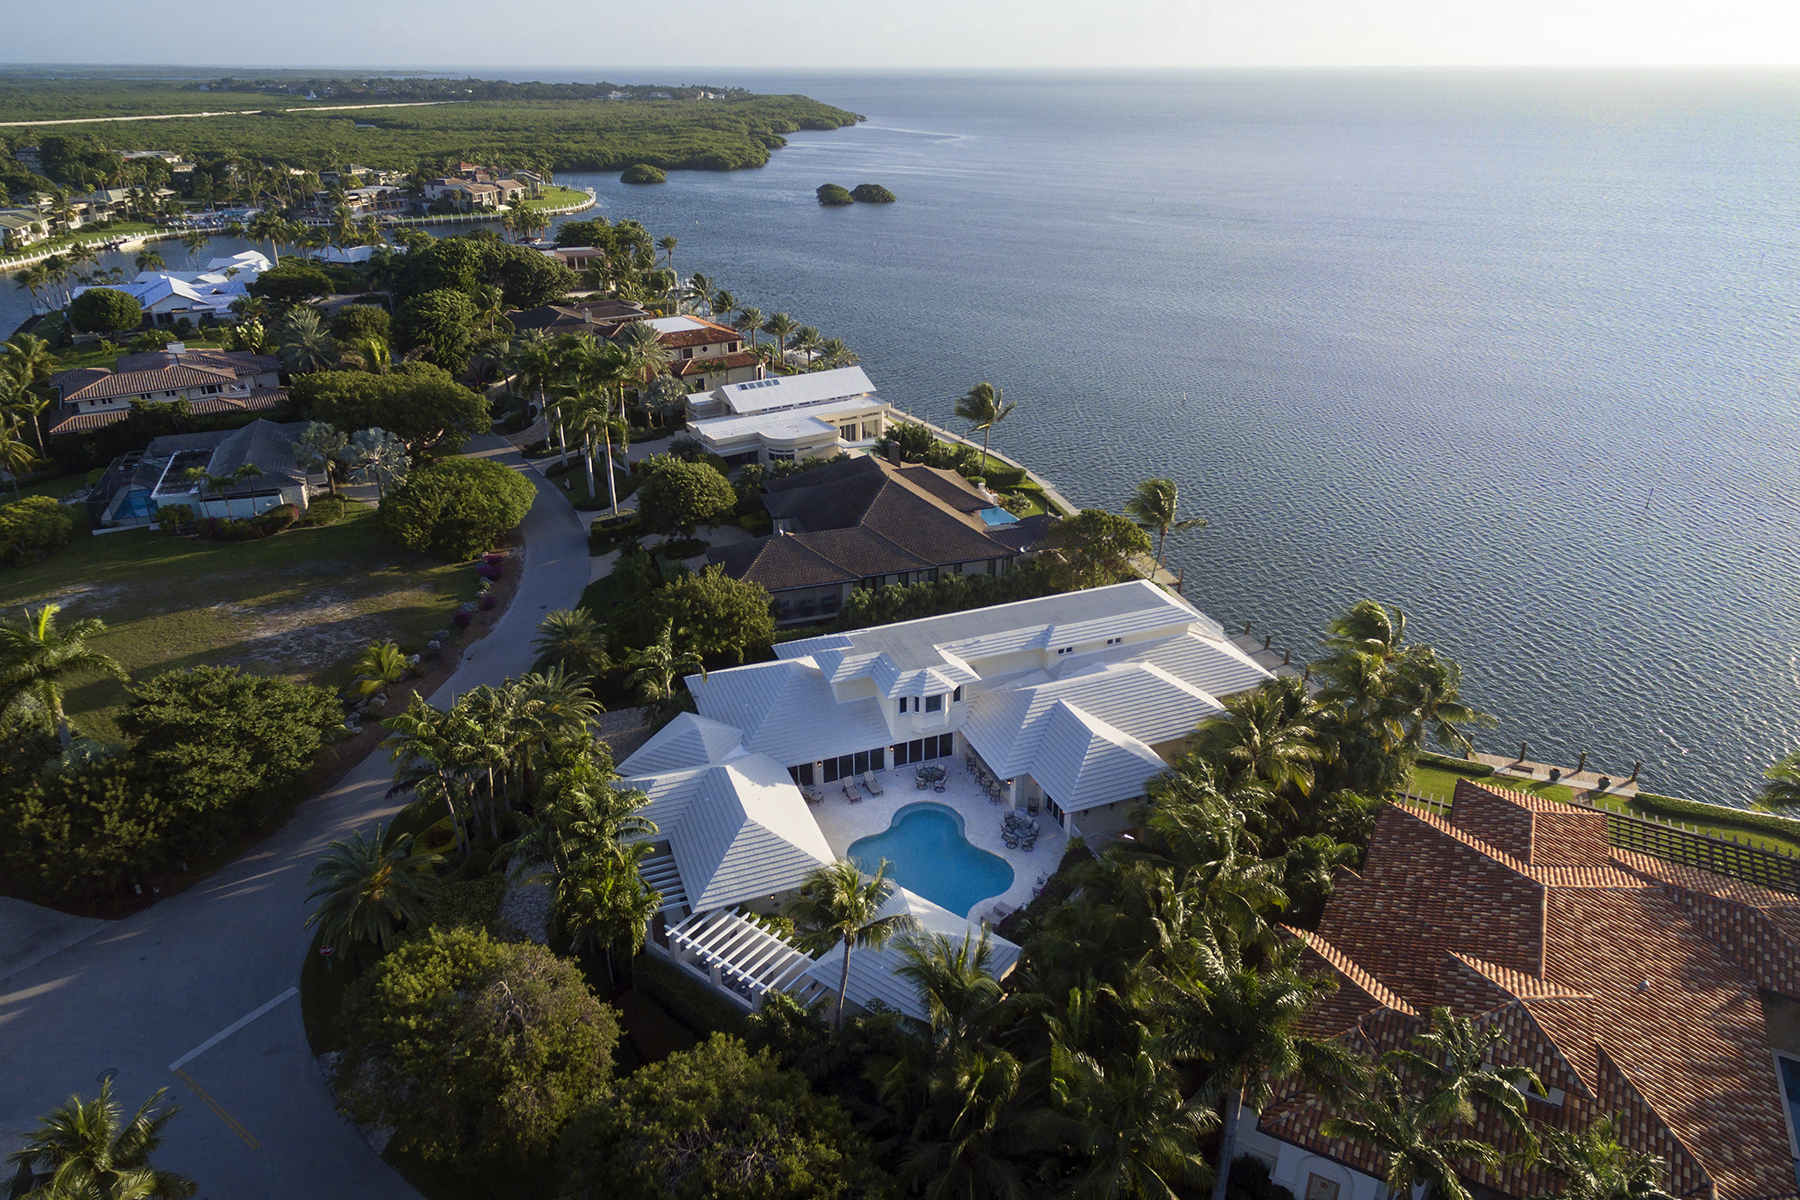 Single Family Home for Sale at Extraordinary Oceanfront Home at Ocean Reef 24 Angelfish Cay Drive Key Largo, Florida, 33037 United States